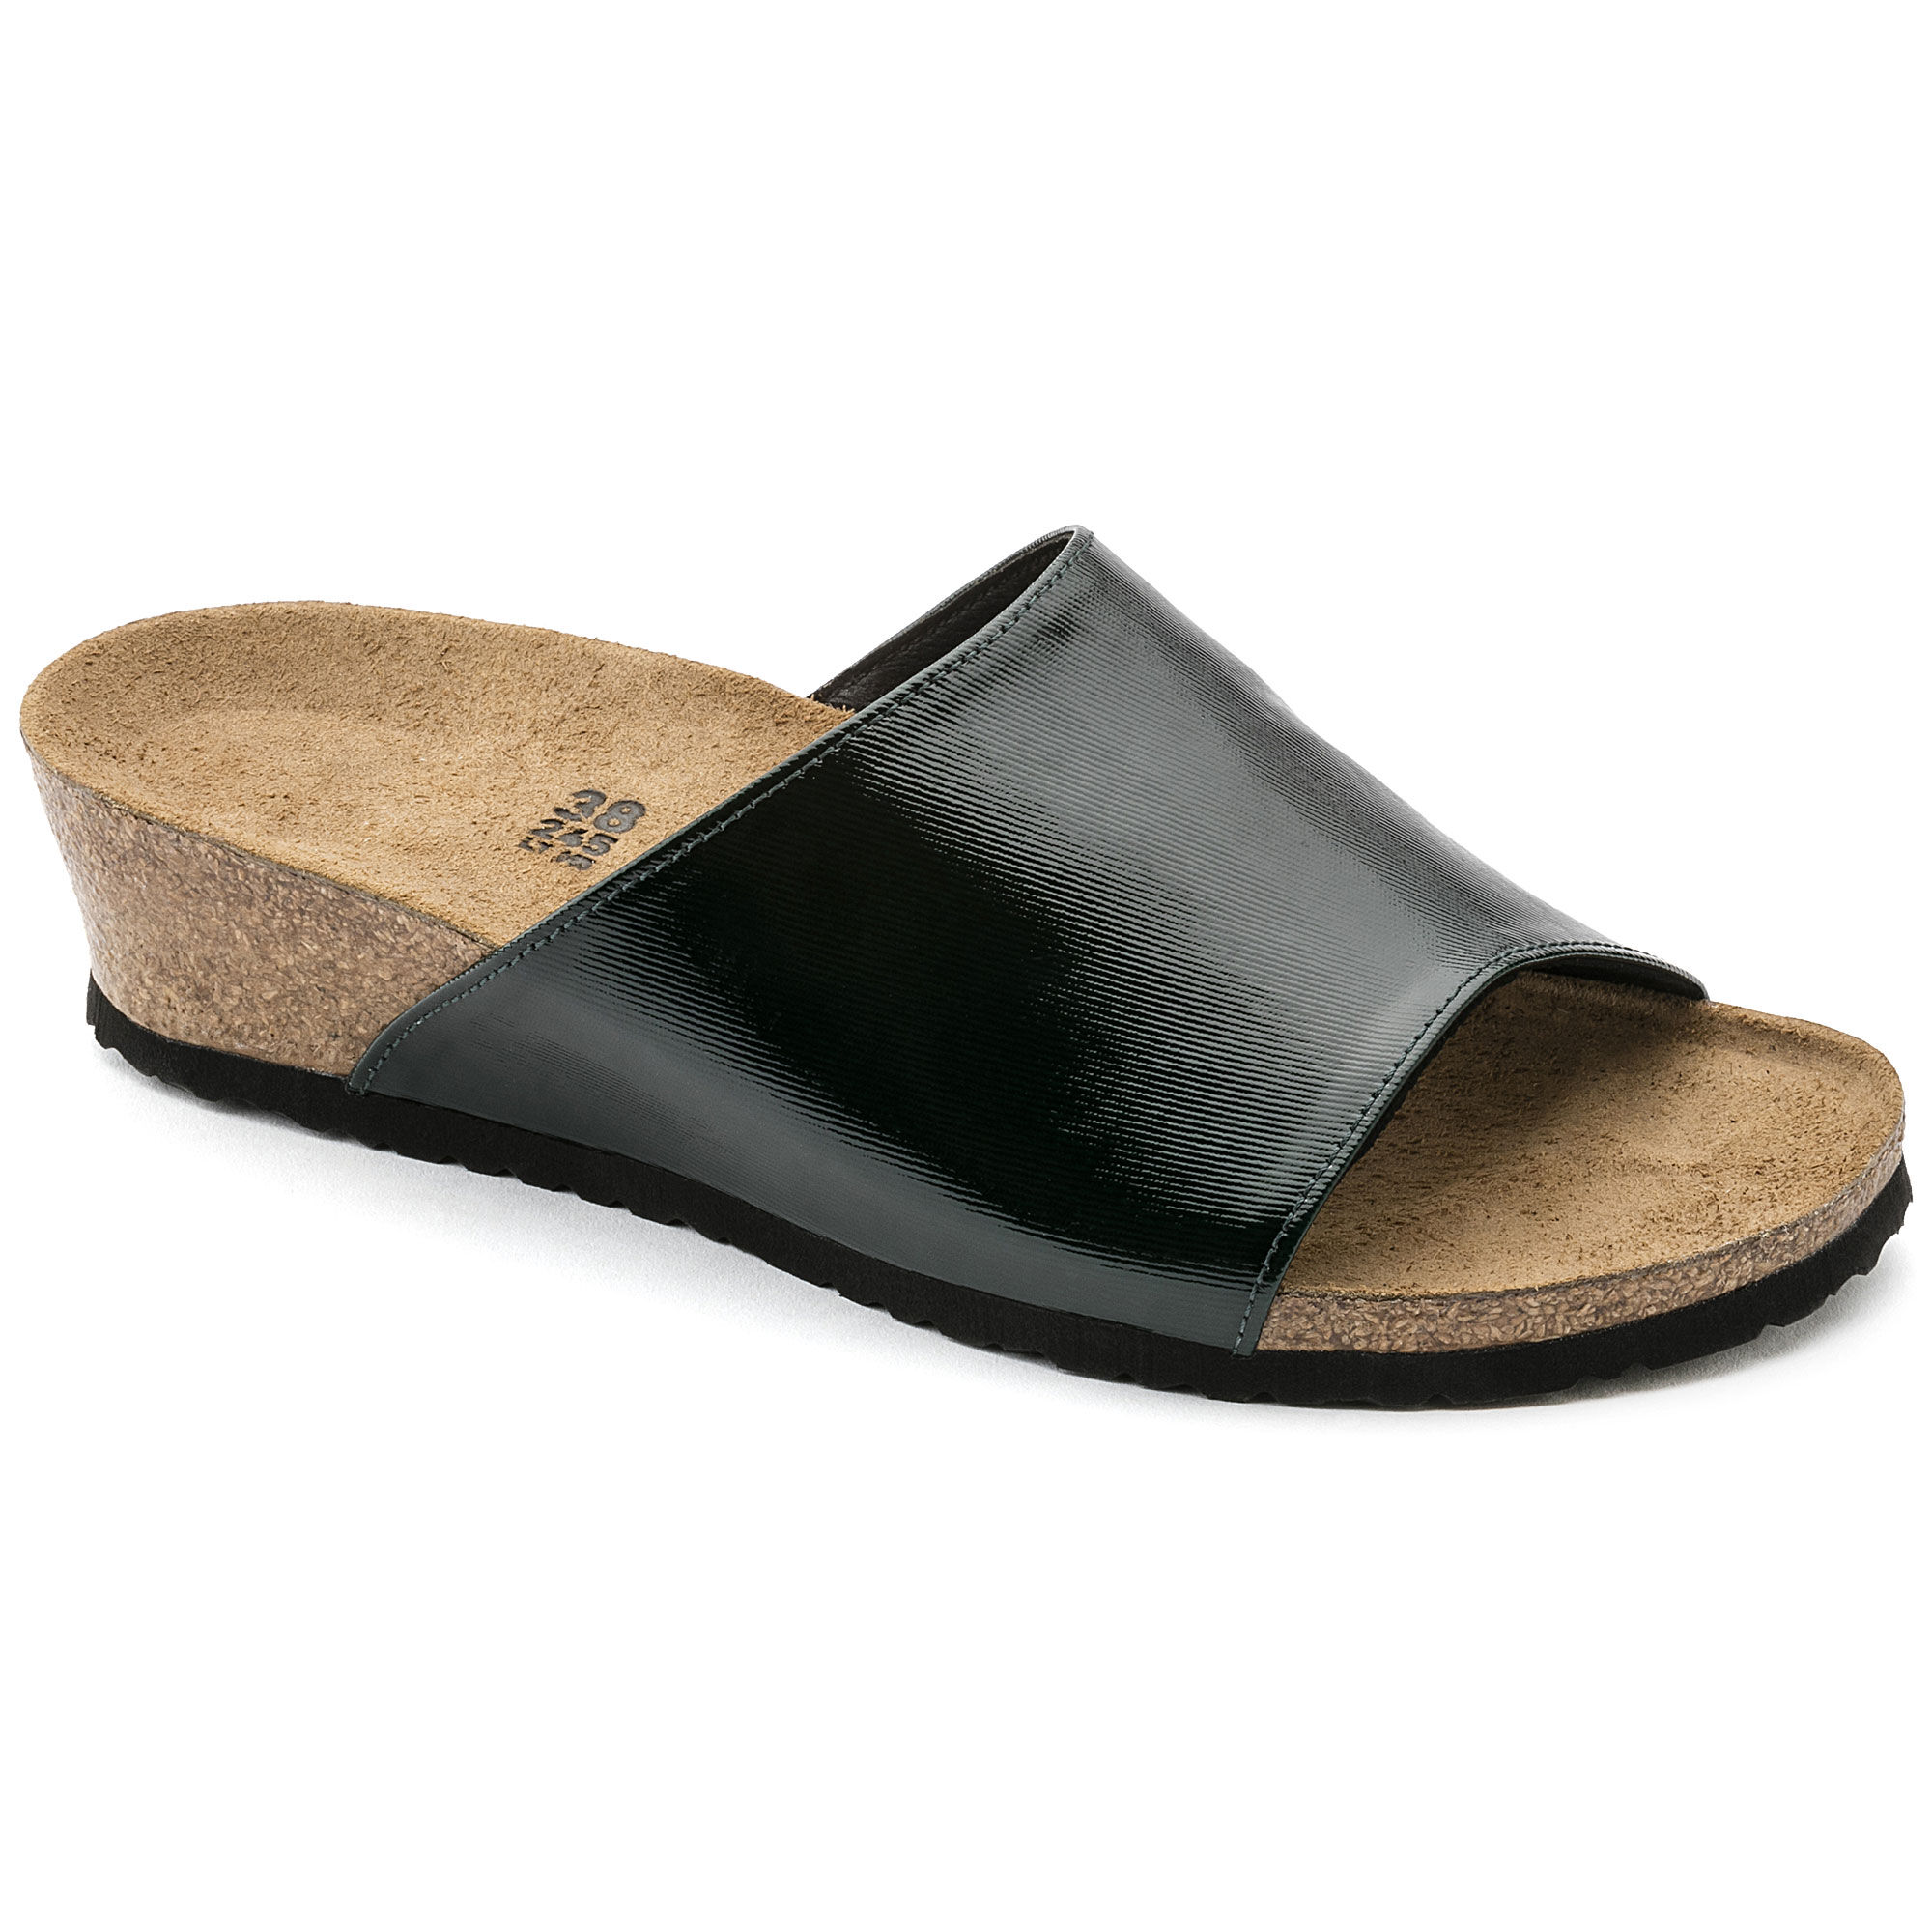 c62dbe8a5 When it is following your journey you need to brood around carrying a  special kind of sandal-exactly that which you are looking for-the best  birkenstock ...